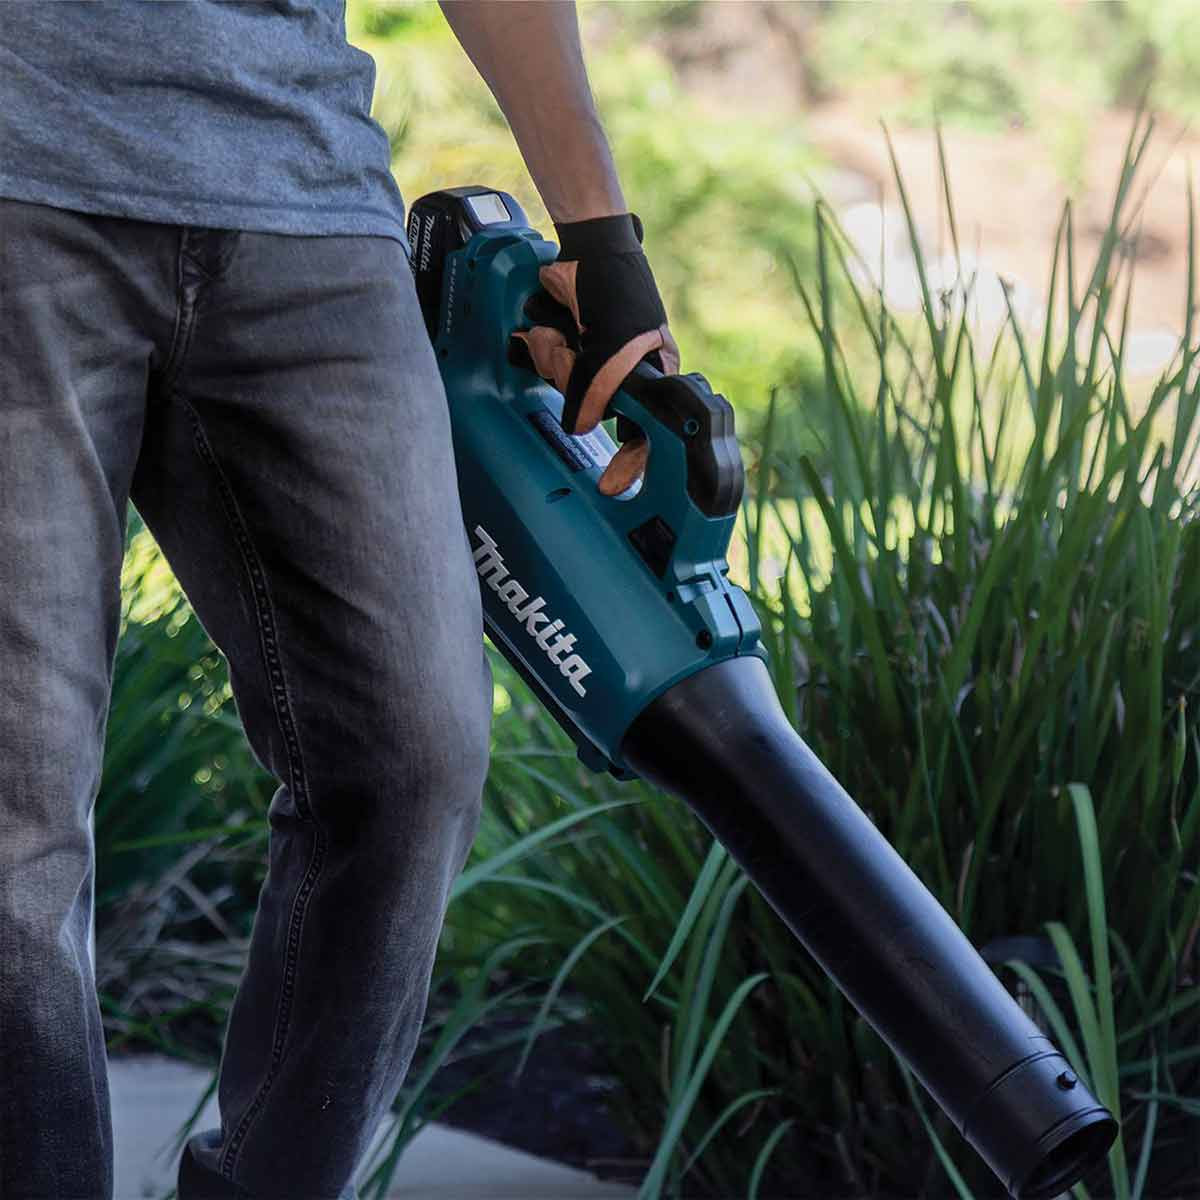 Makita XBU03SM1 18V LXT® Lithium-Ion Brushless Cordless Blower Kit (4.0Ah)